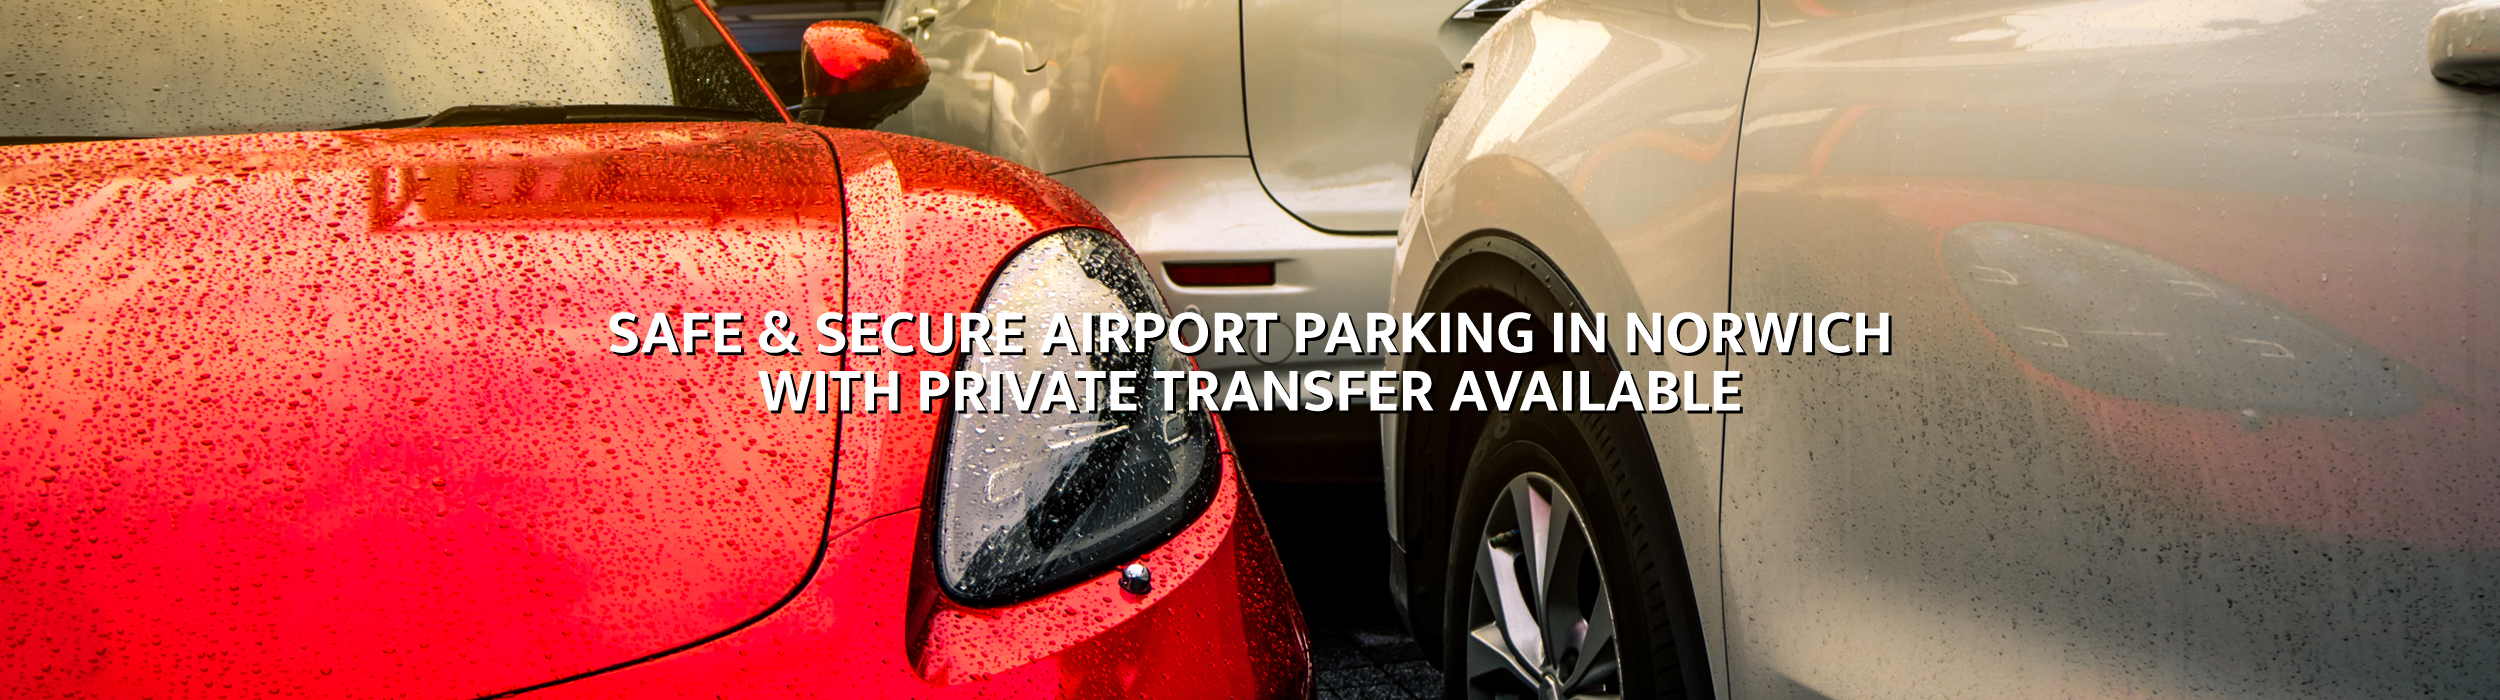 PARKFLYSTAY Norwich Airport Parking front page image providing safe secure airport parking in Norwich